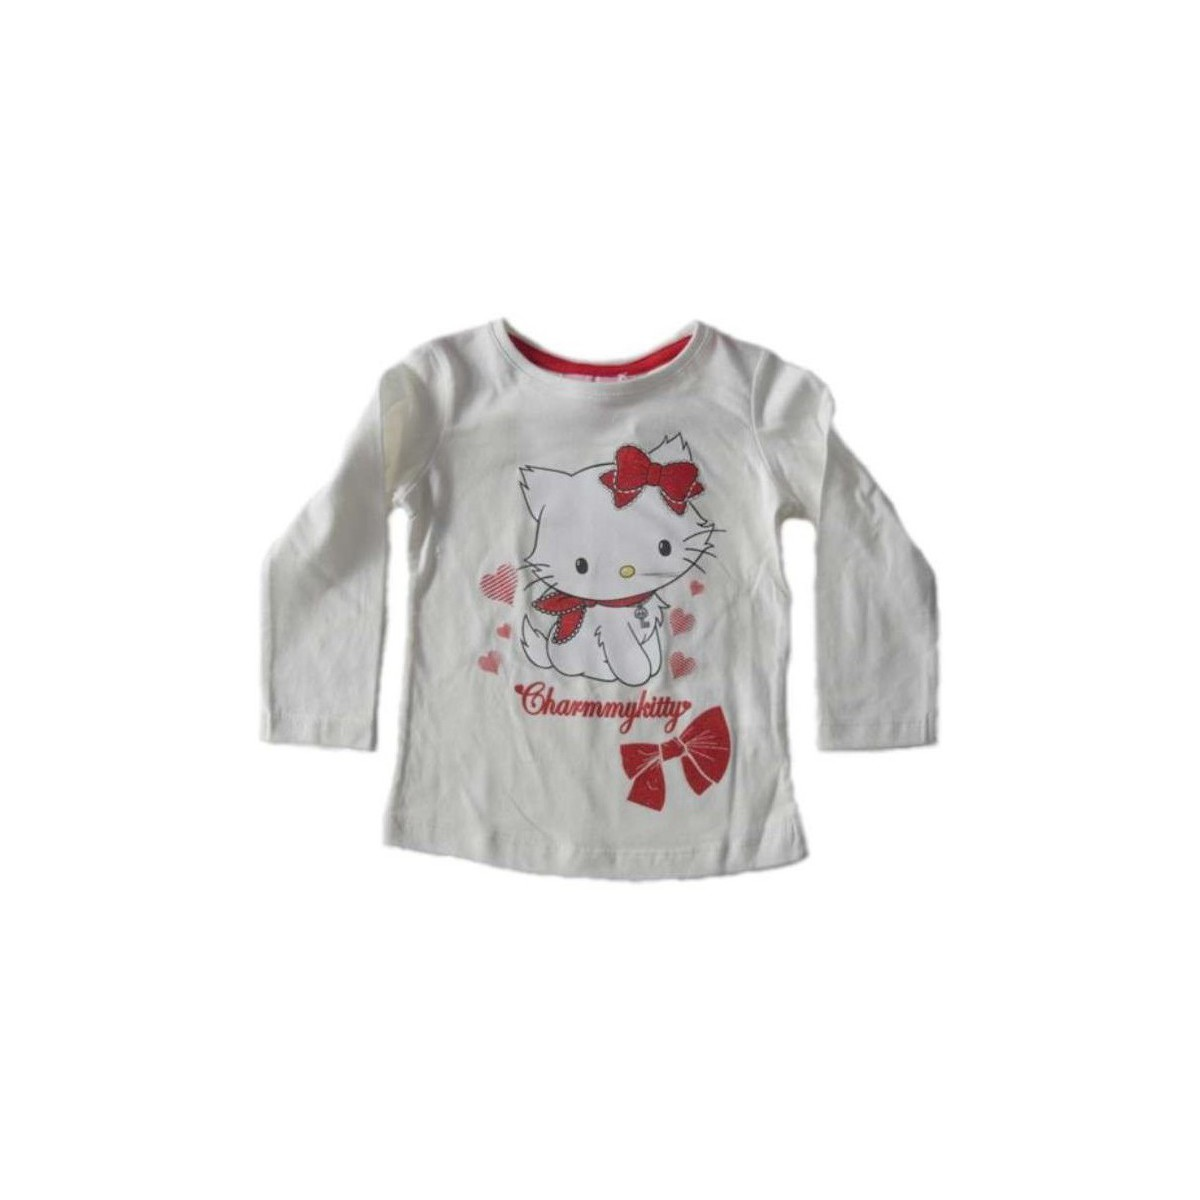 Sanrio T-shirt à manches longues Charmmy Kitty ivoire